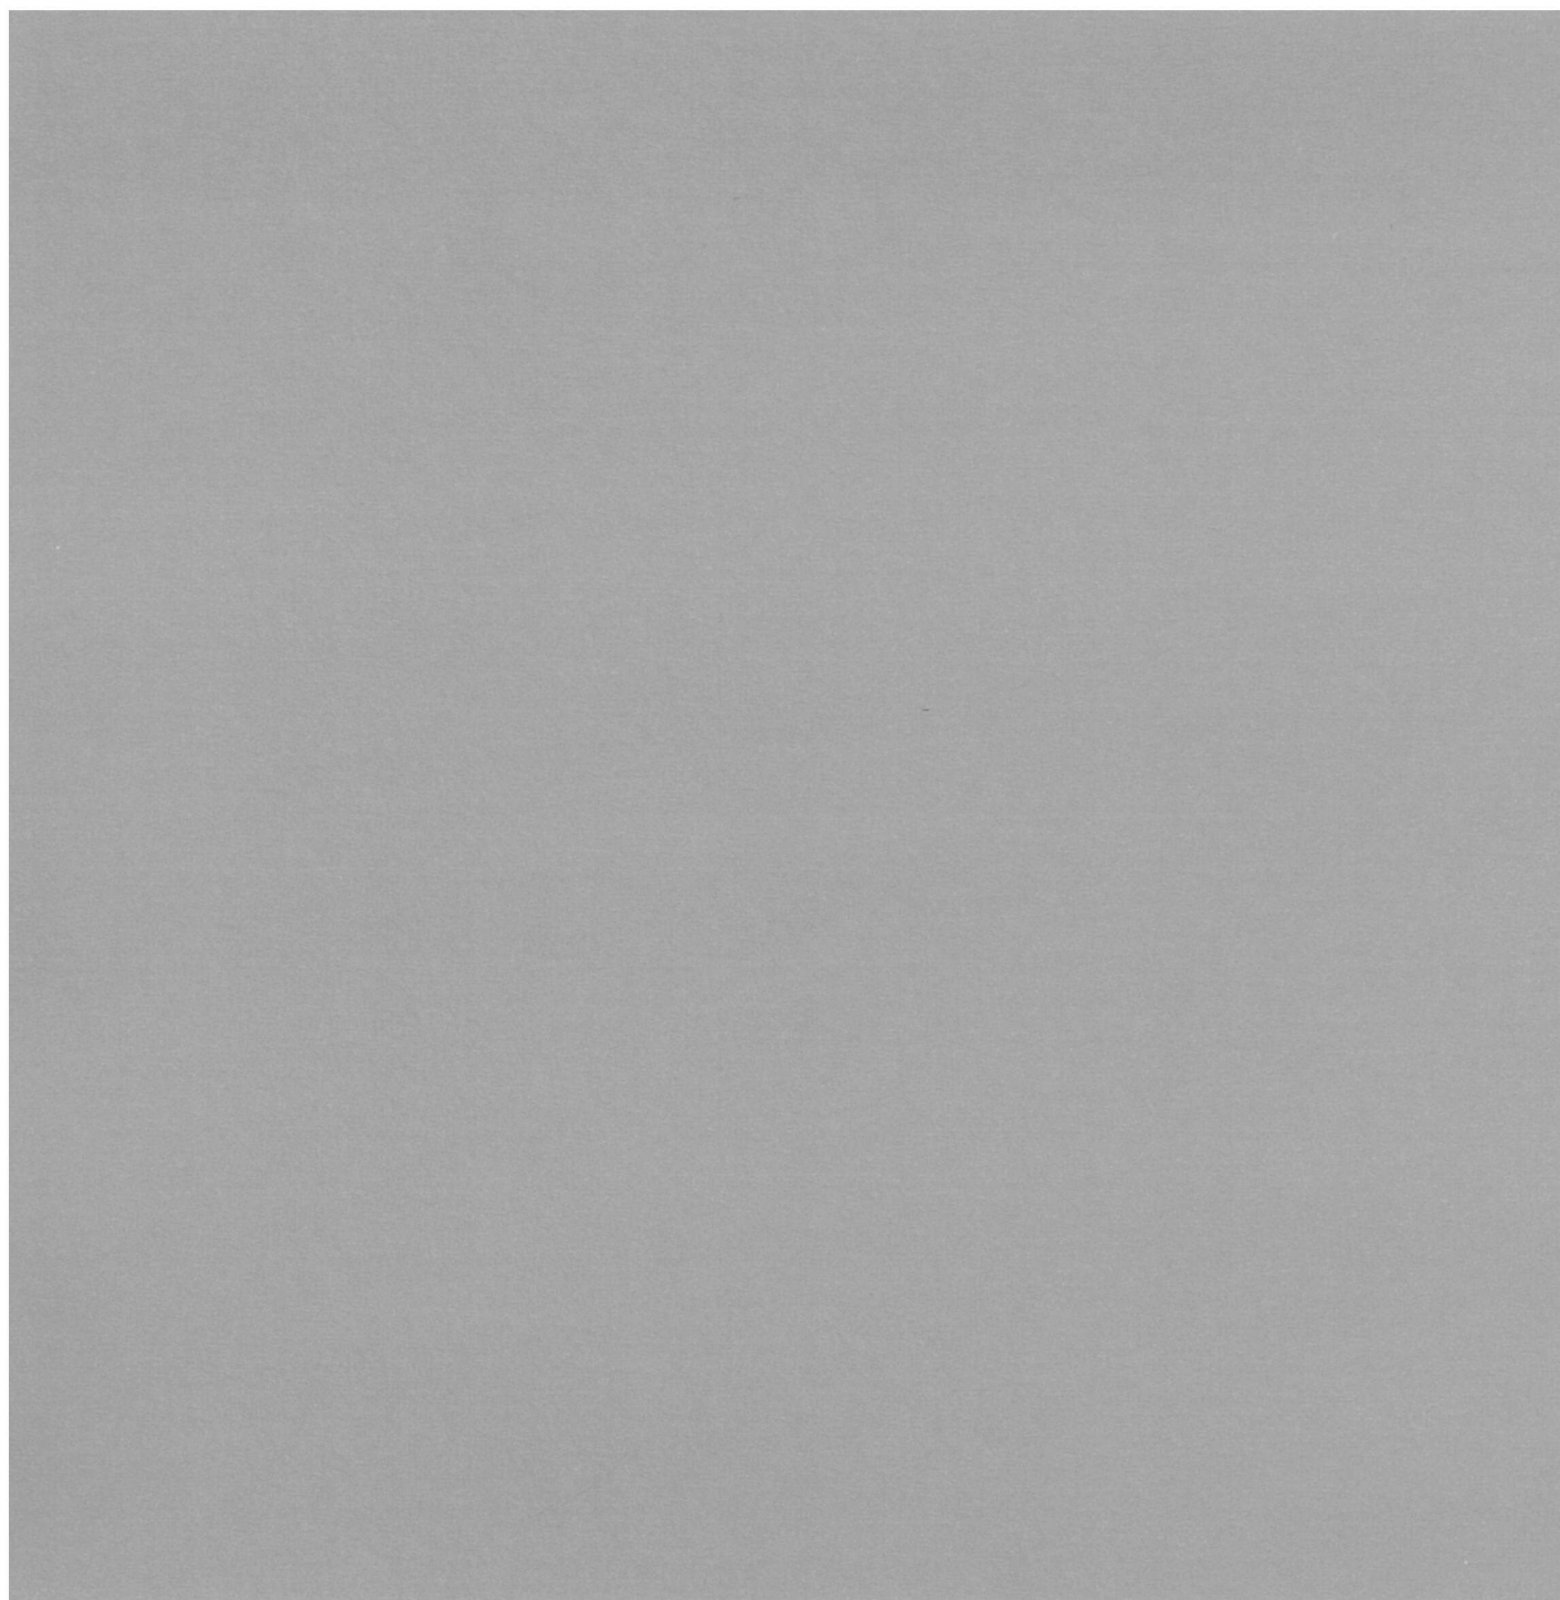 AC Cardstock 12X12 doux/lisse Cendre 80lbs - Smooth Cardstock, Ash Item # 71765